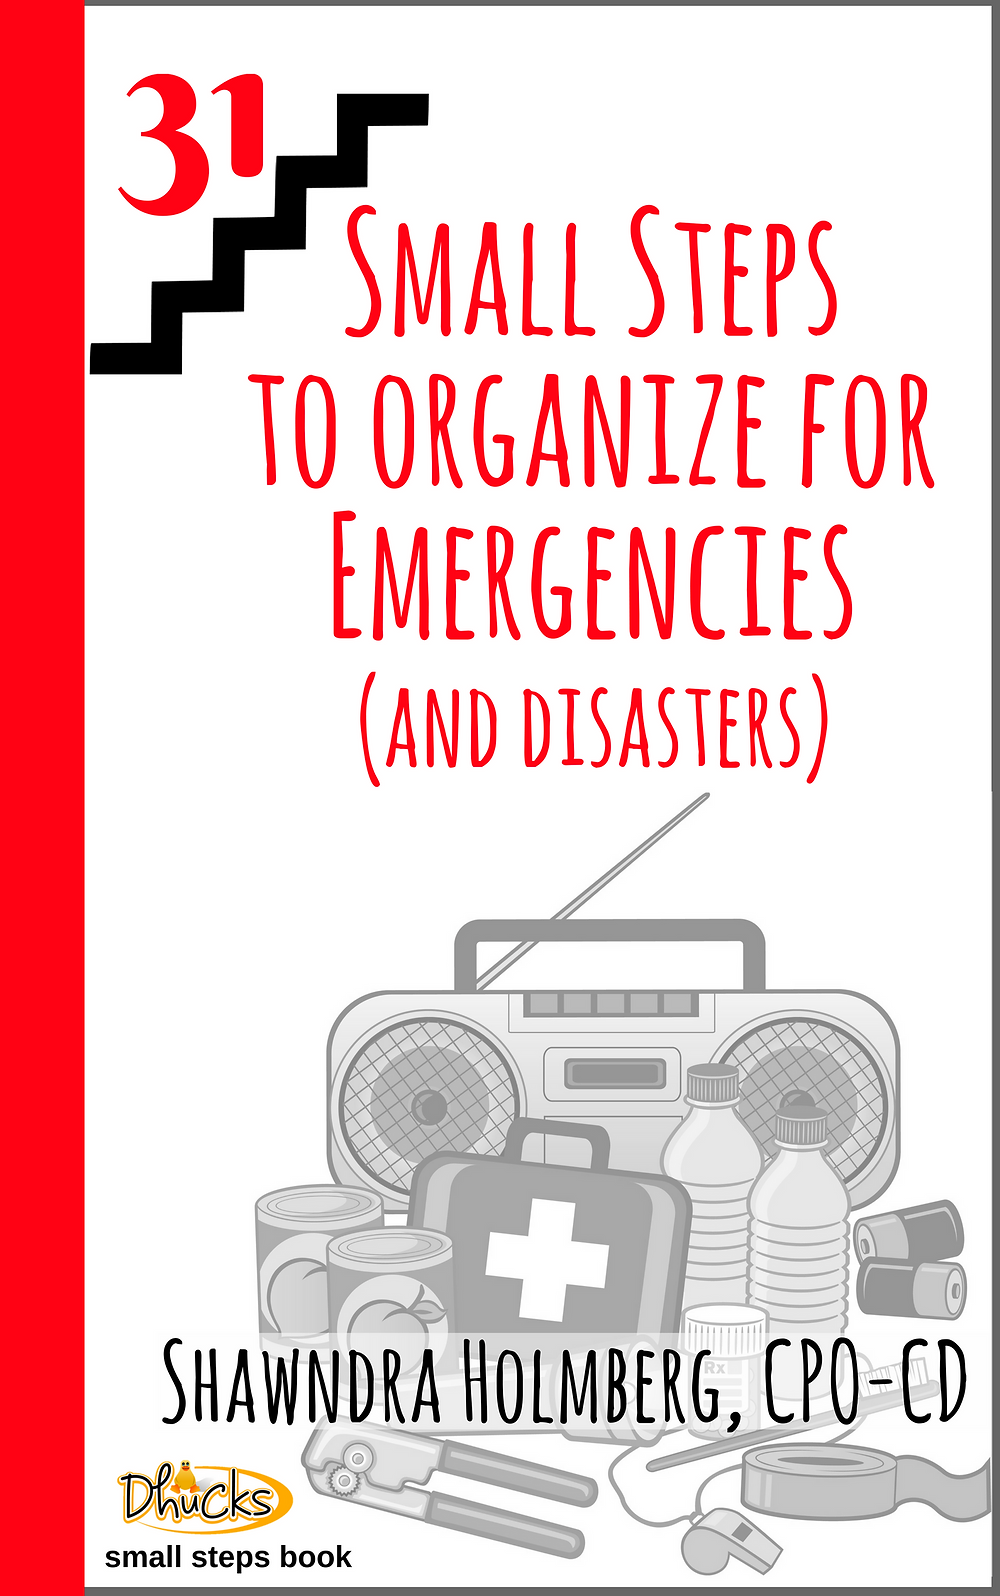 31 Small Steps to Organize for Emergencies (and Disasters)